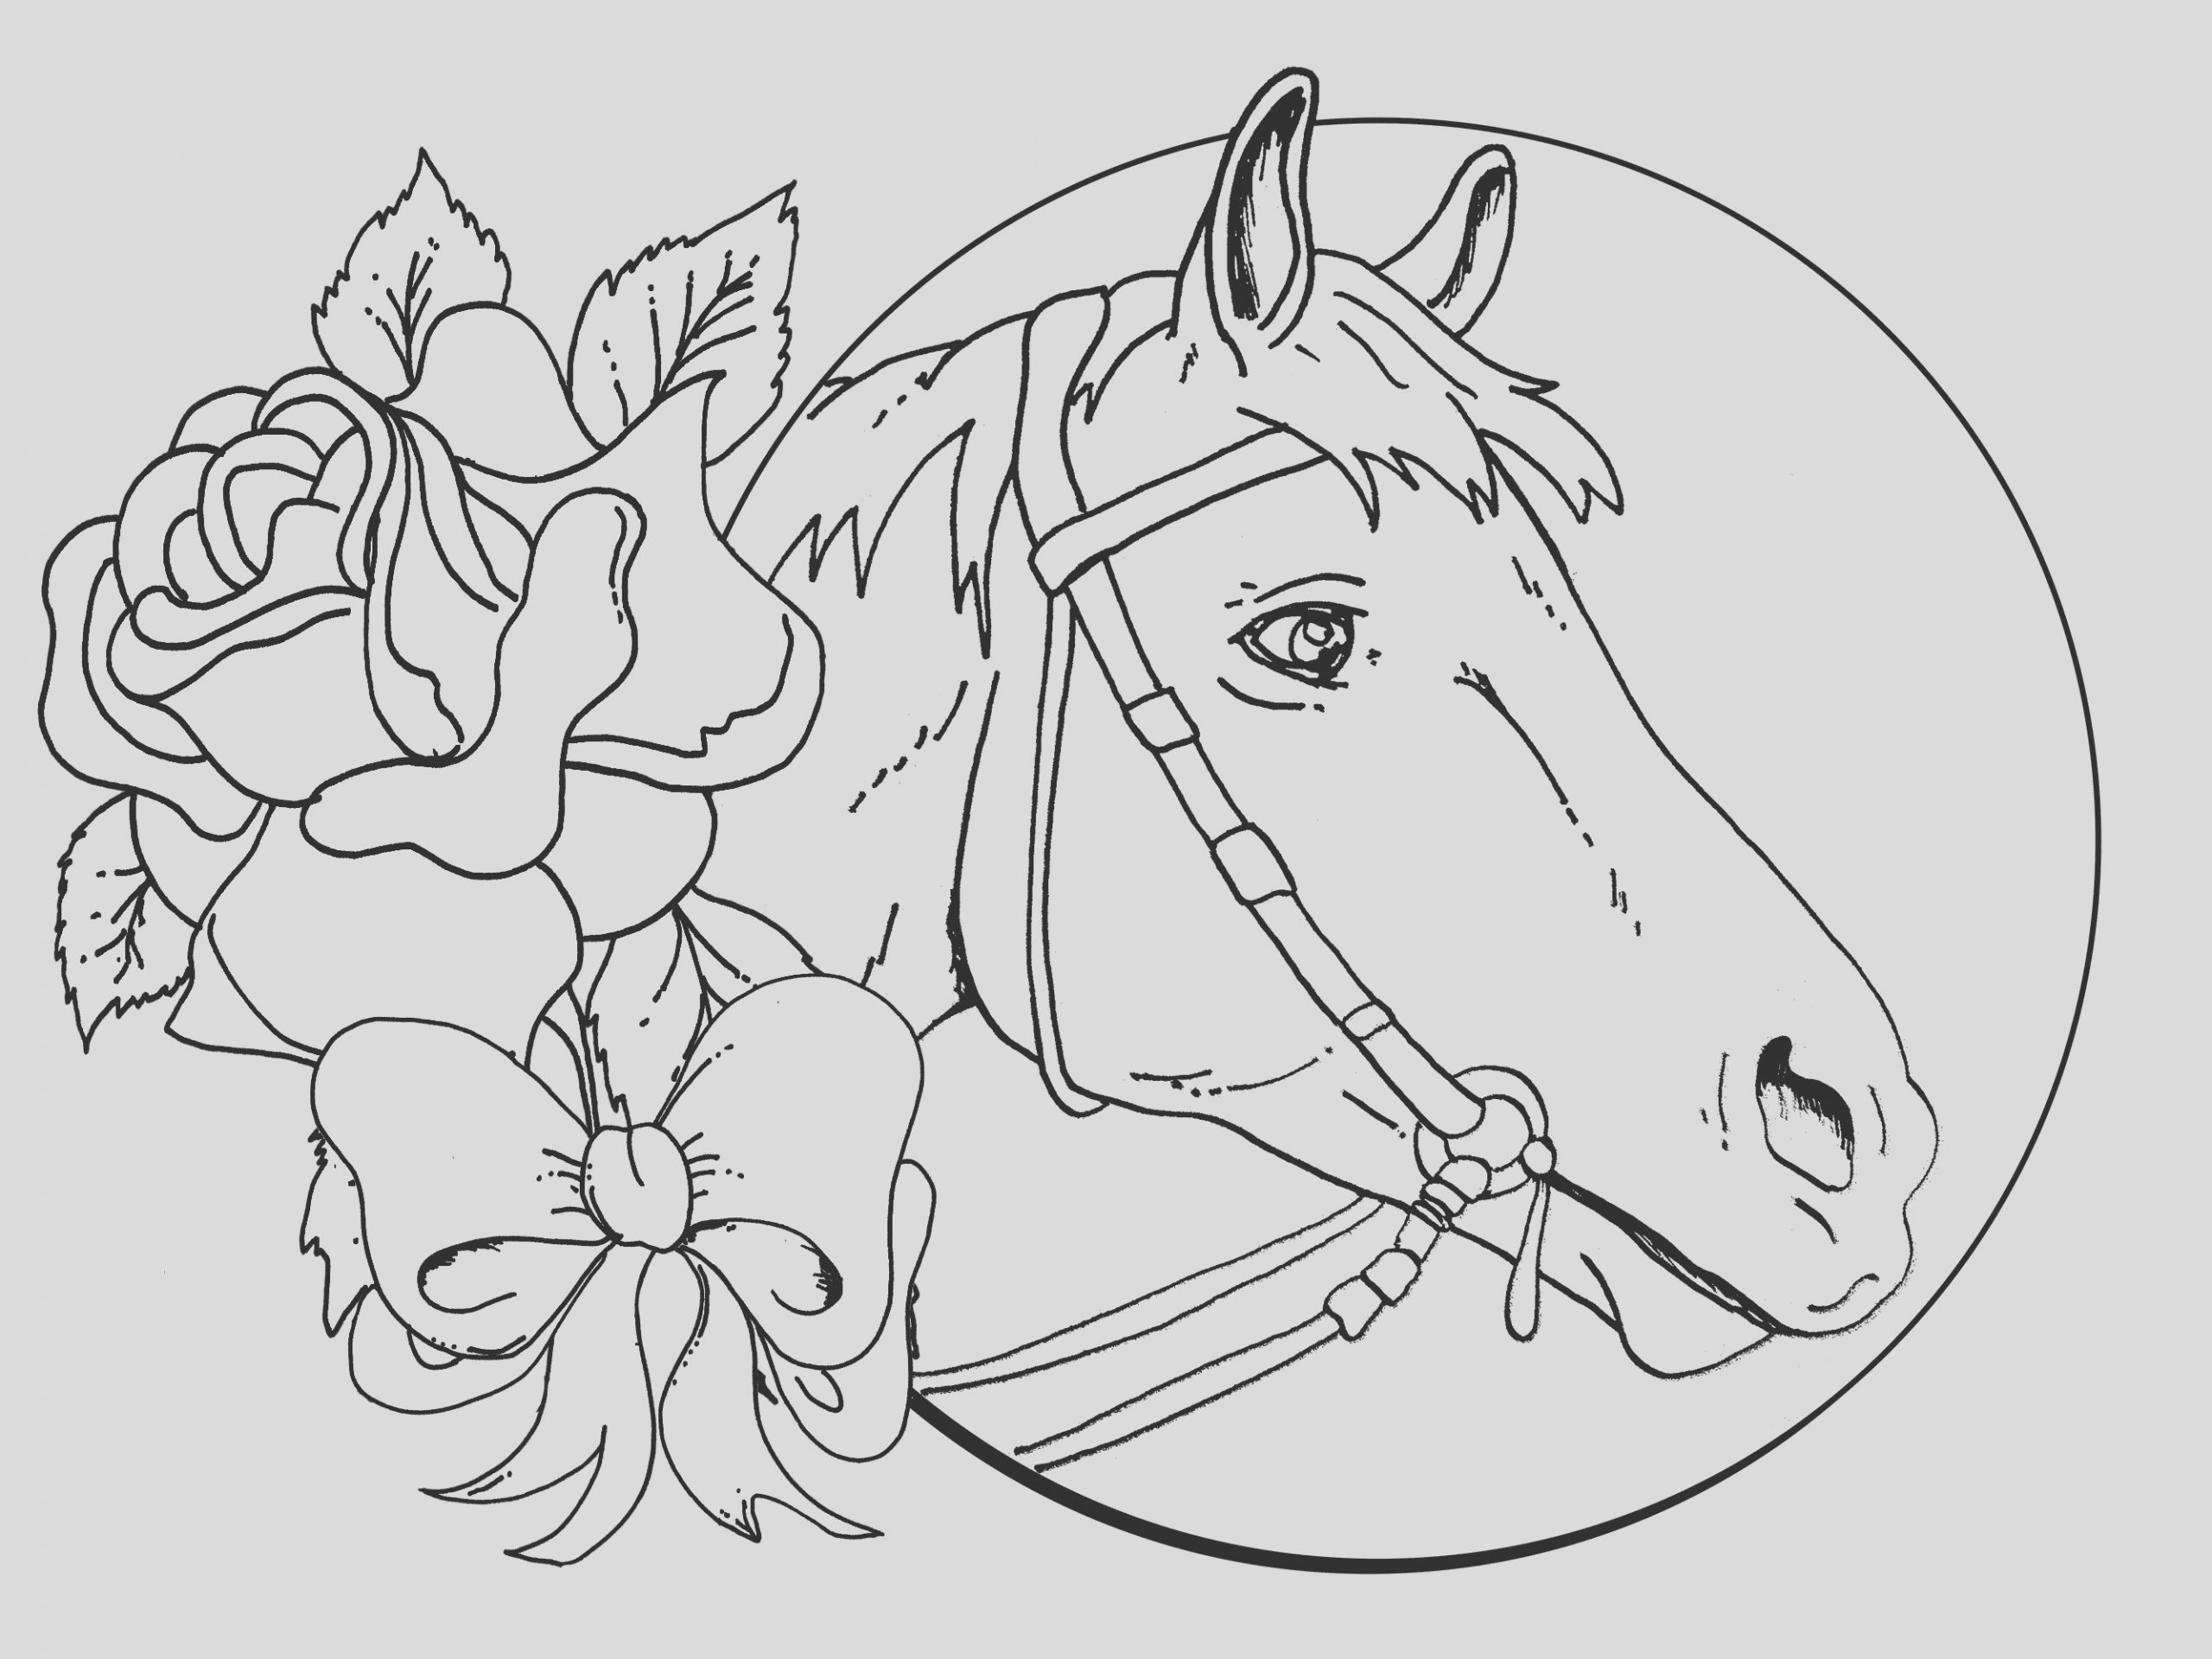 horses coloring pages free coloring pages horse colouring pages for adults realistic horse coloring pages for adults